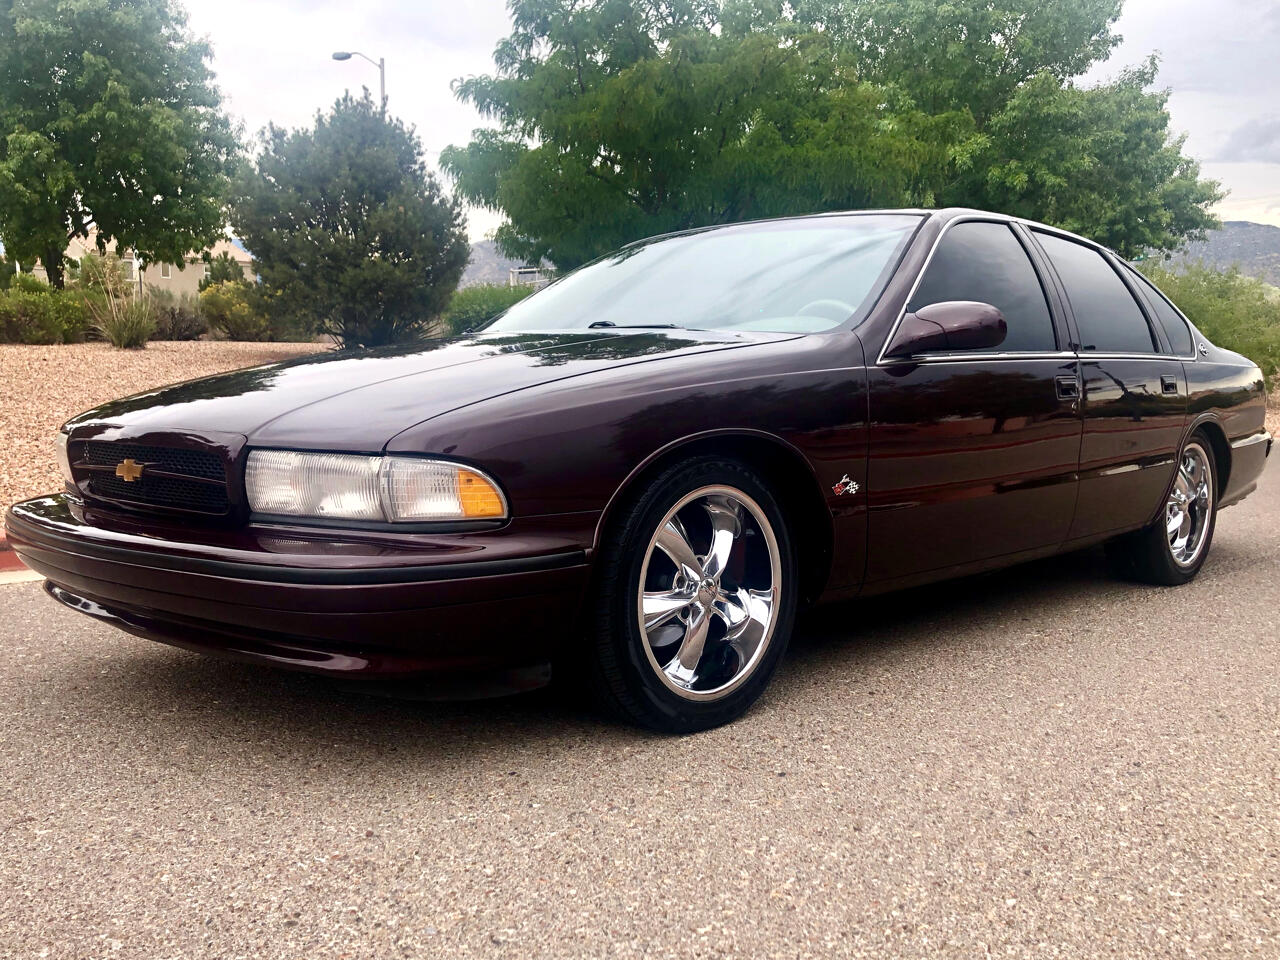 1996 Chevrolet Caprice Classic/Impala SS/Caprice Police/Taxi Pkgs Impala SS 4dr SDN